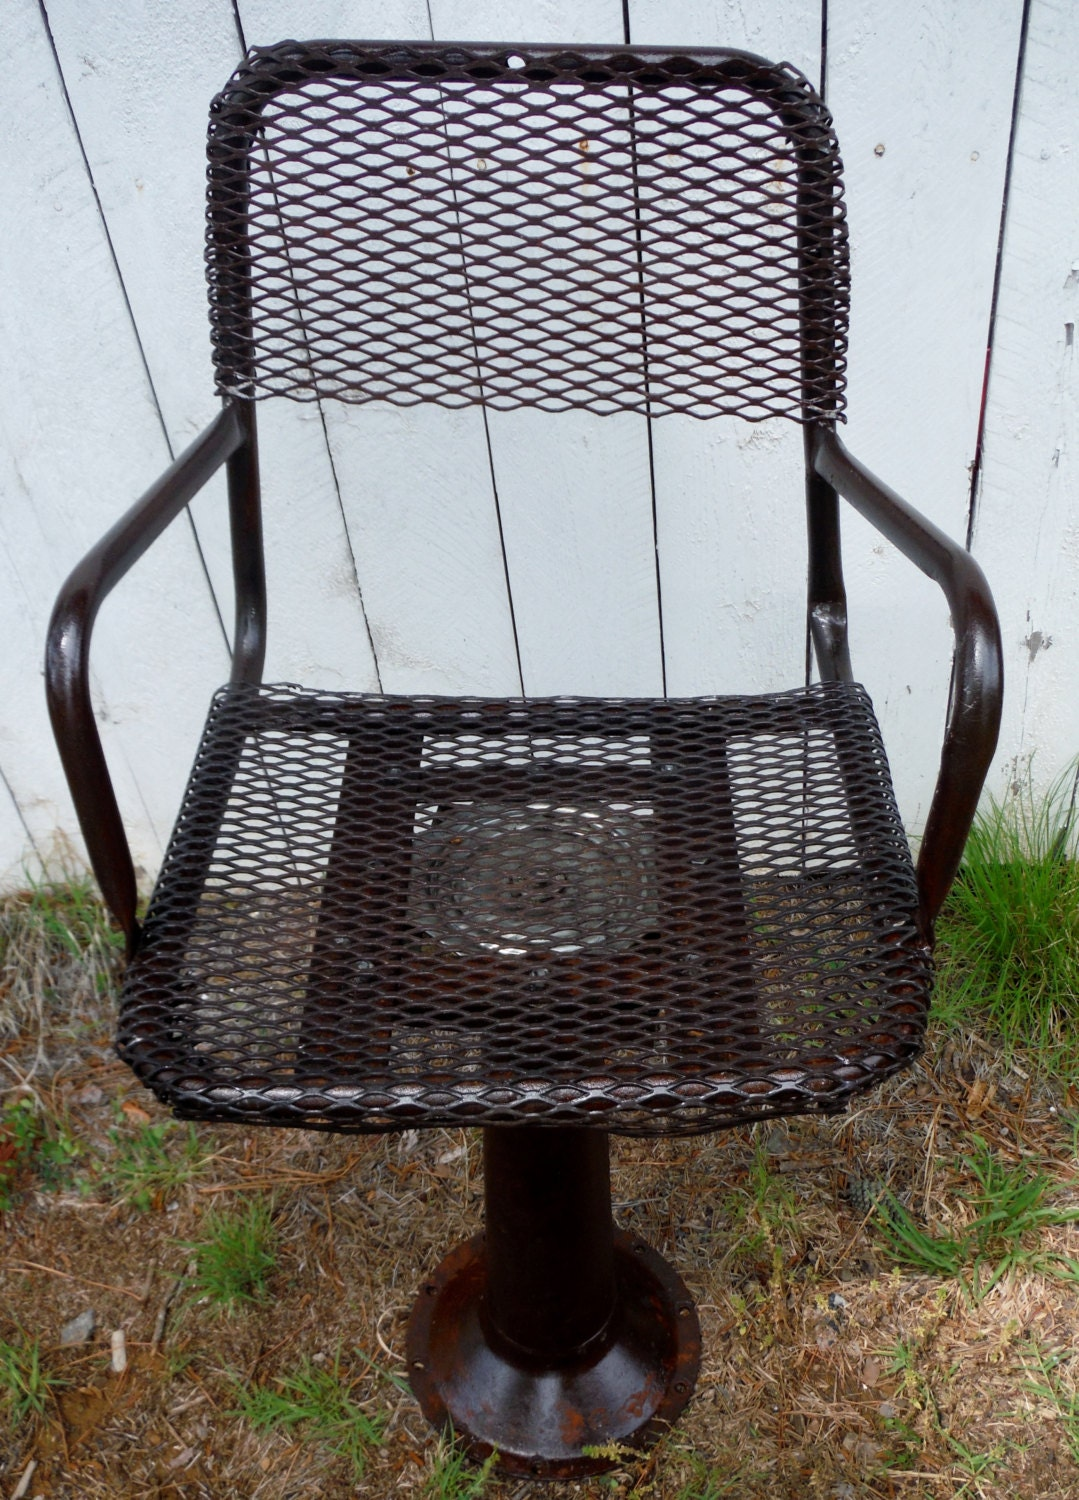 Heavy Equipment Frames : Old heavy equipment repurposed industrial seat frame stool